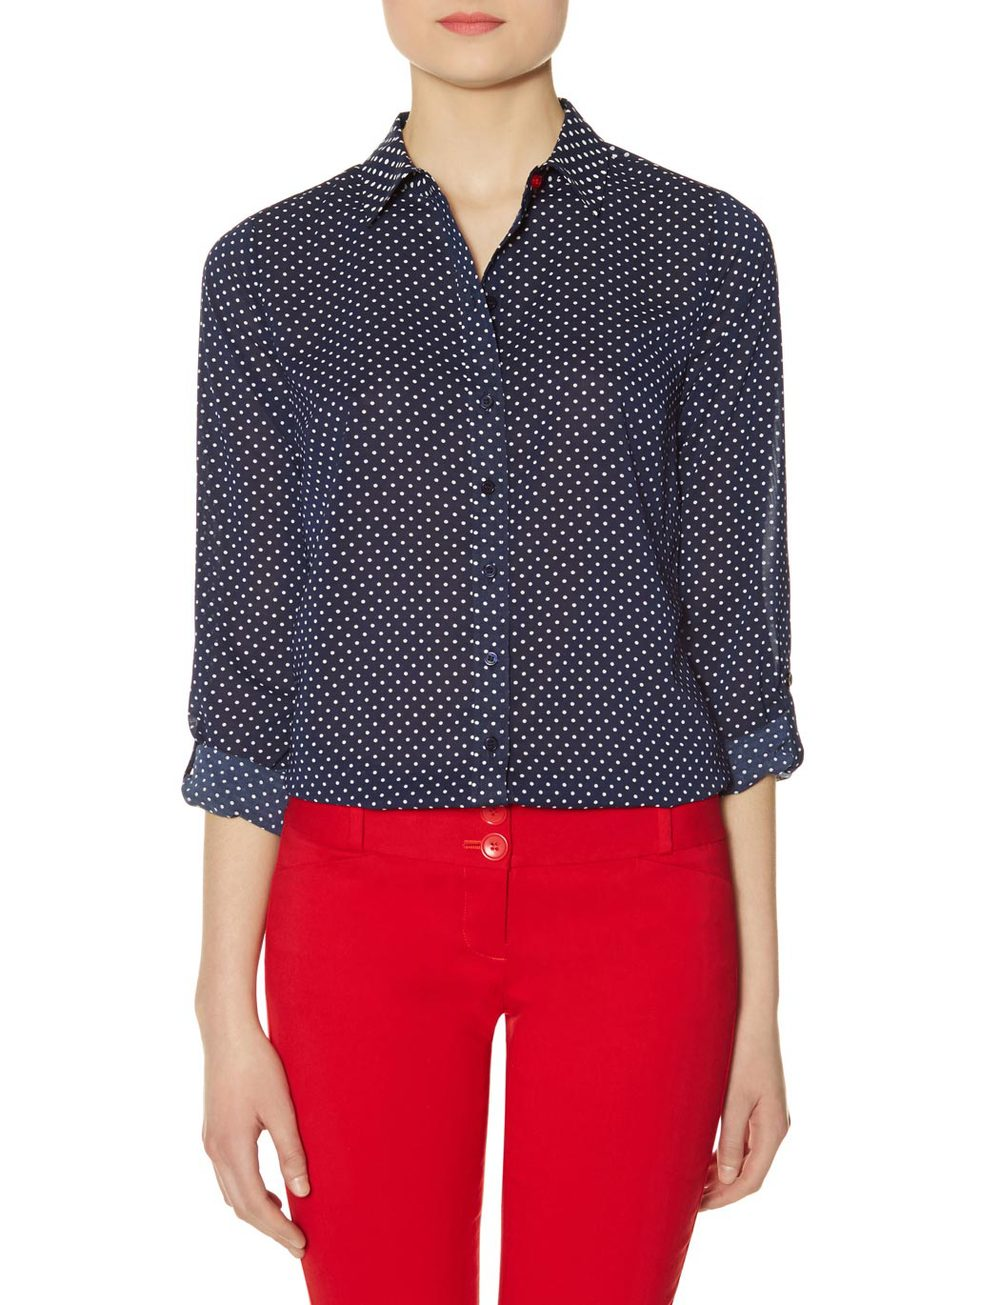 Contrast button polka dot shirt. The Limited. Was: $49.95 Now: $29.97.